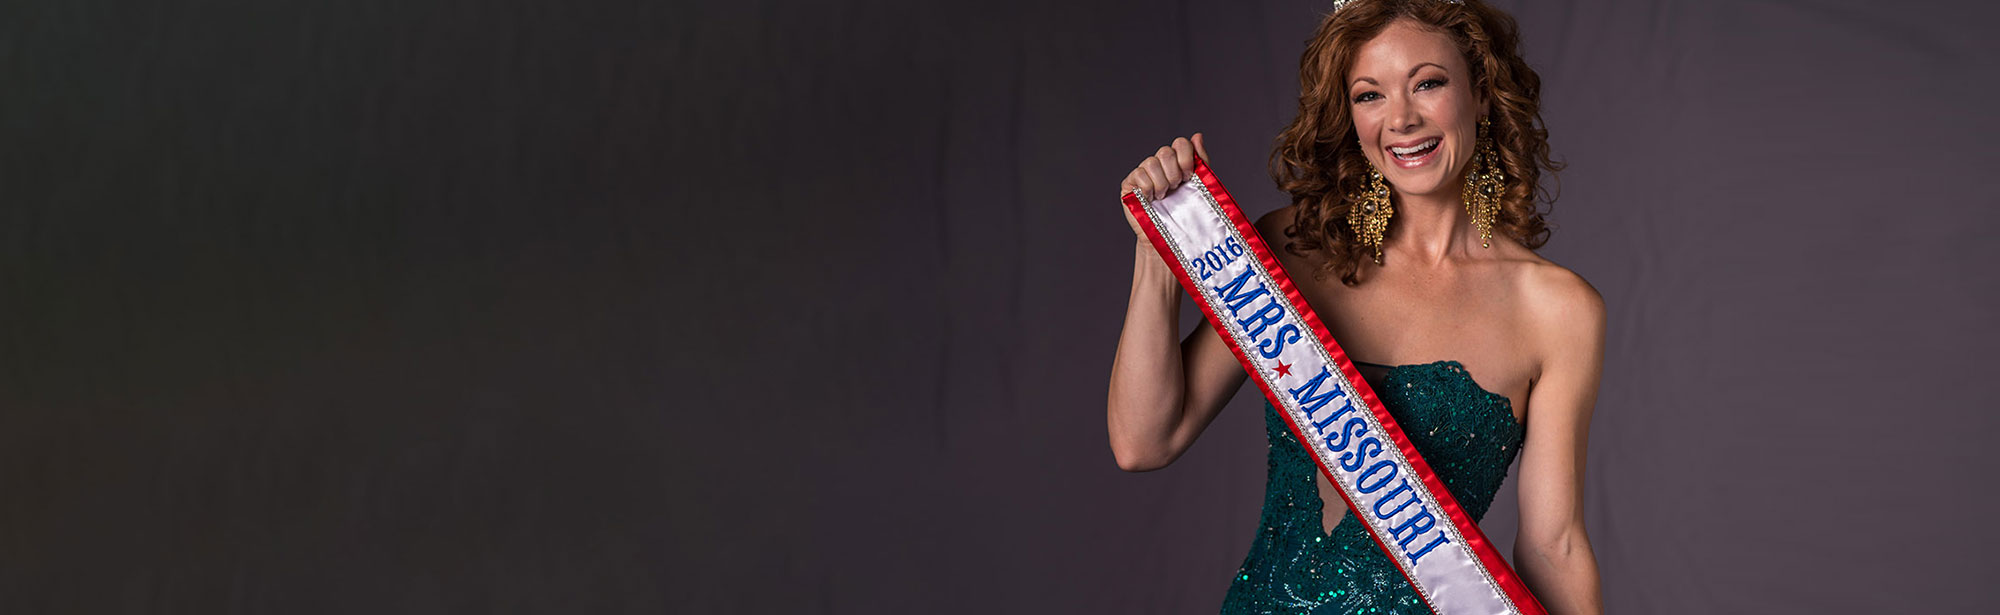 Miss Missouri 2016